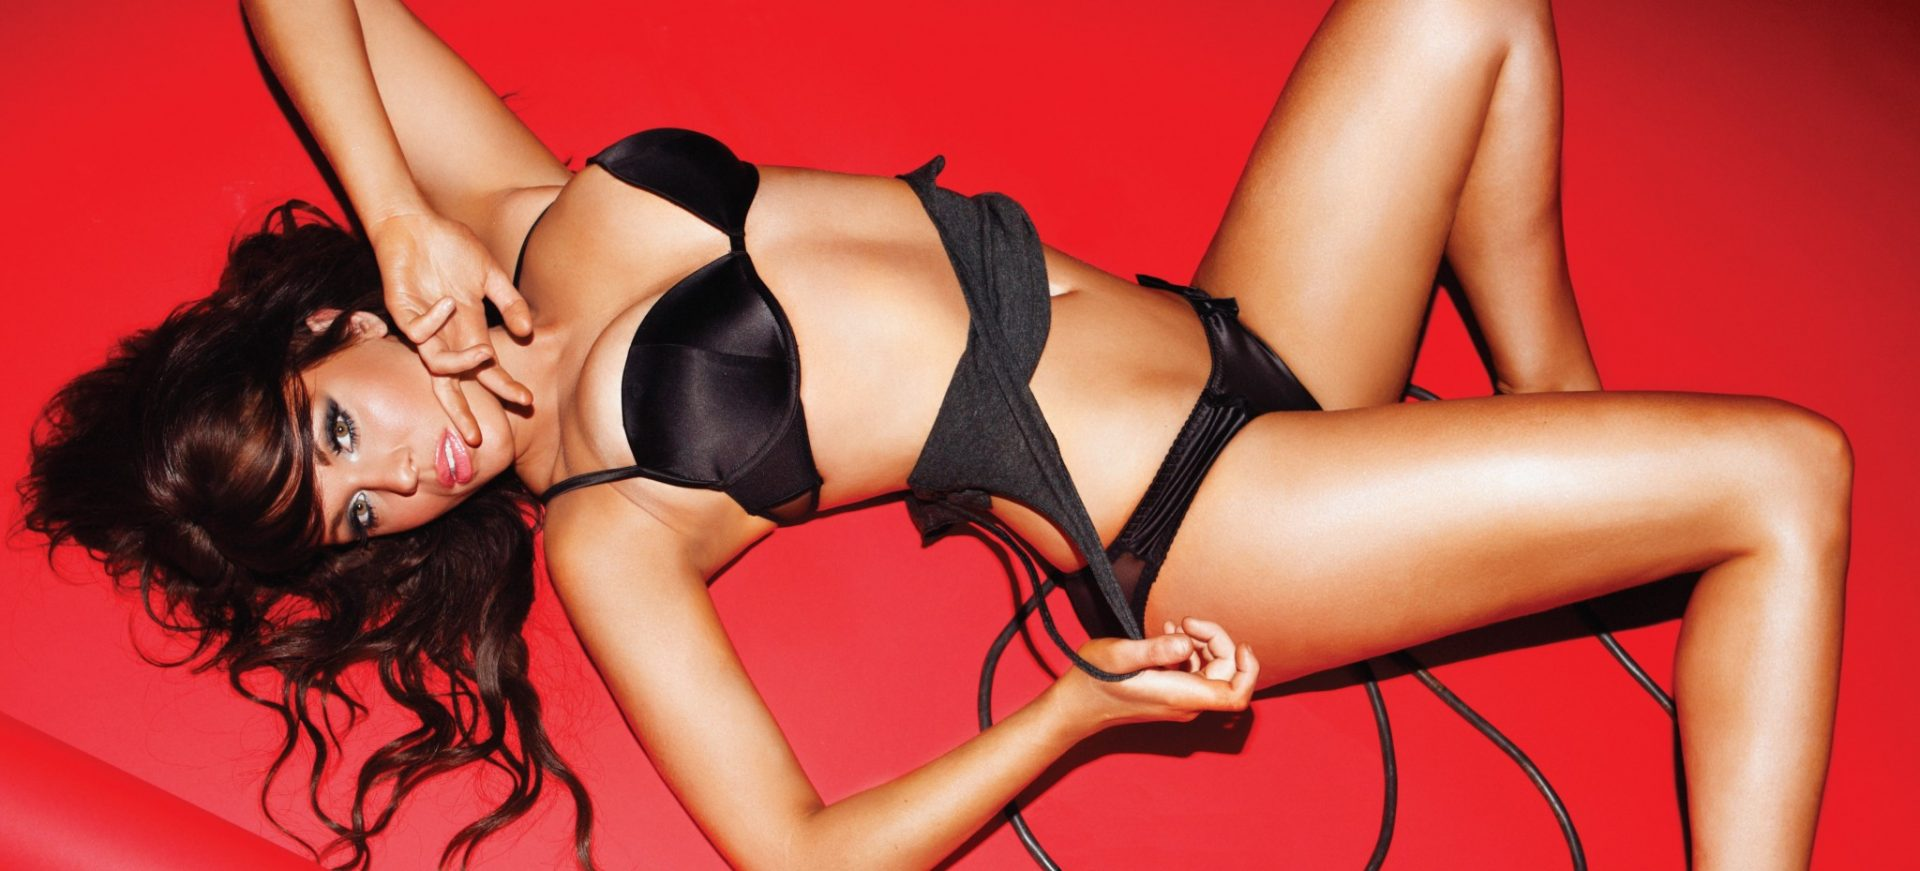 Vicky Pattison from her Loaded 2011 photoshoot